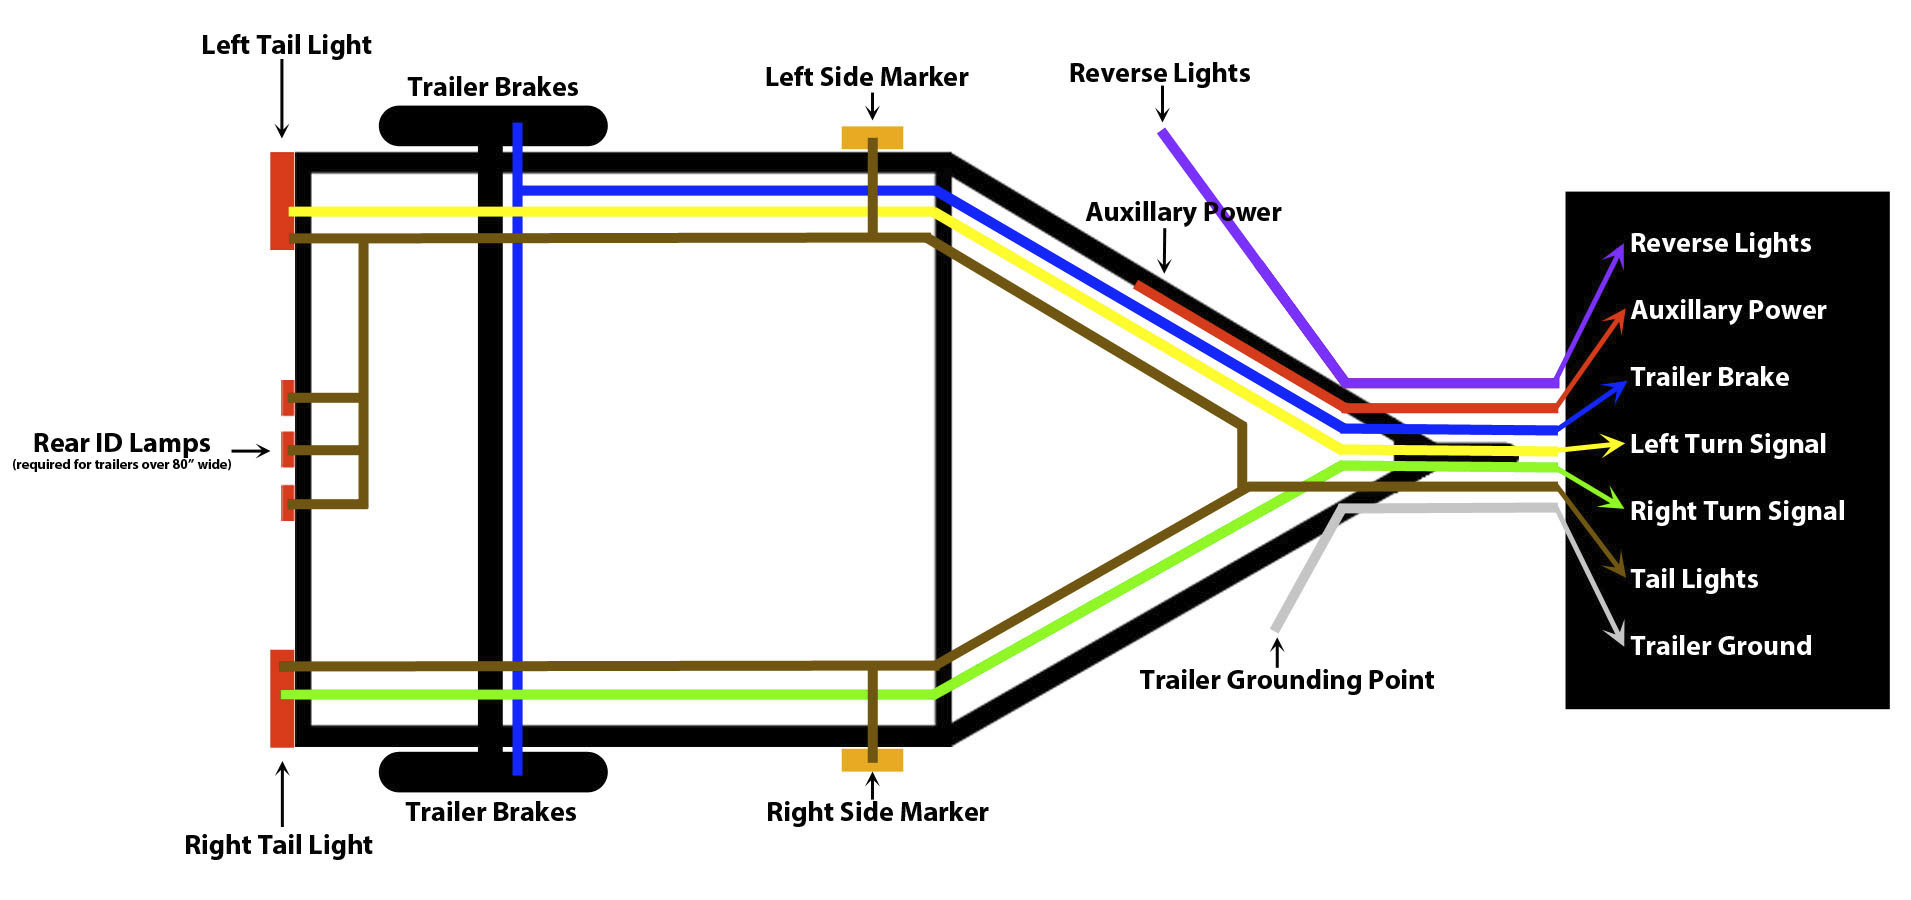 How To Wire Trailer Lights - Trailer Wiring Guide & Videos - Wiring Diagram For Trailer Lights